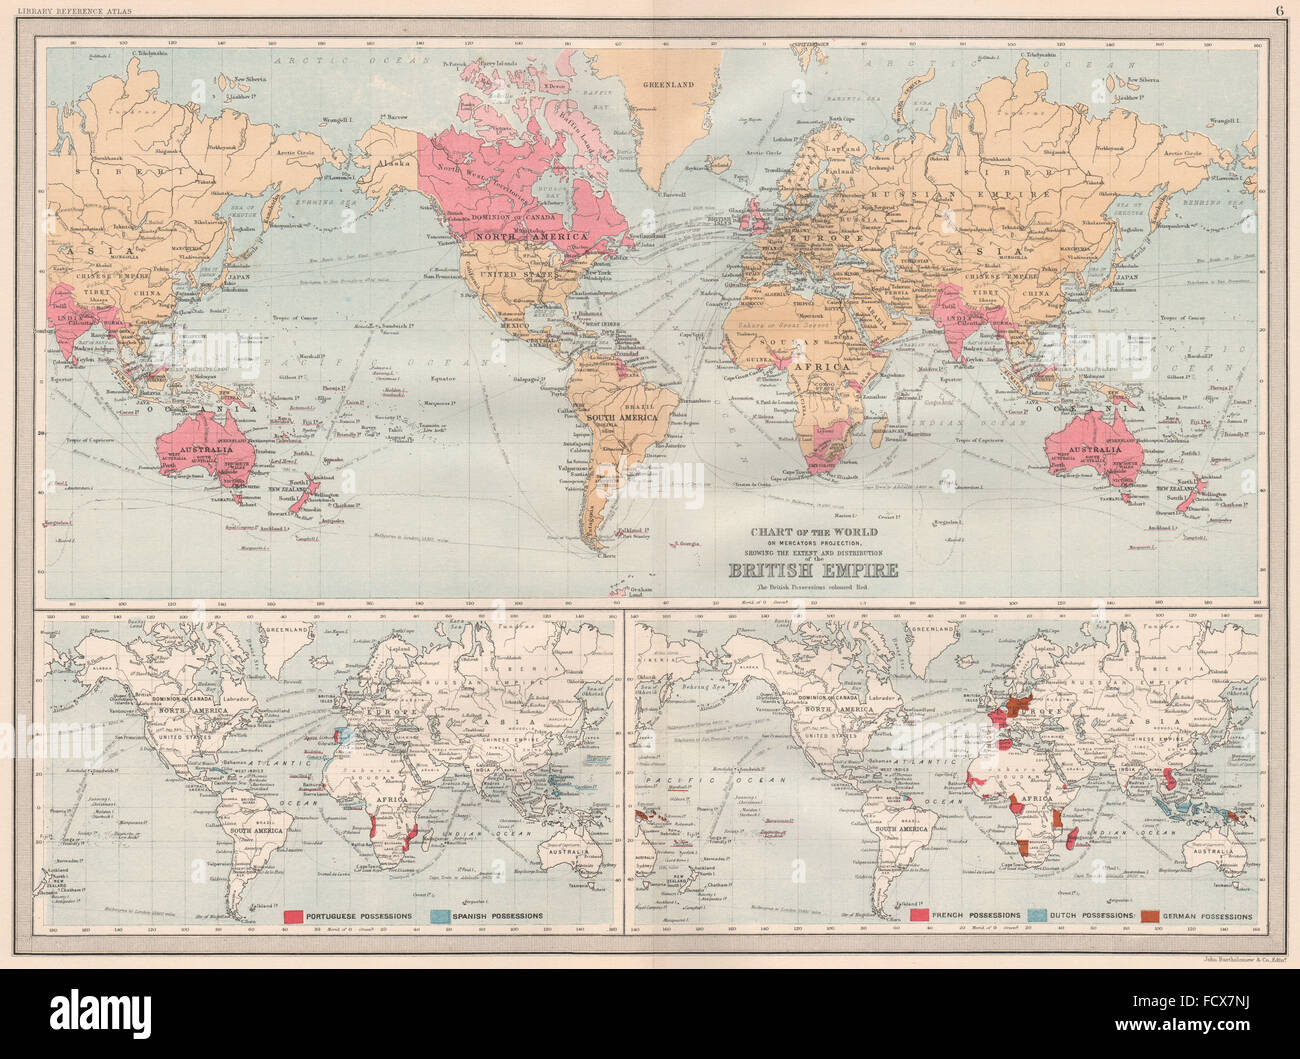 British empire colonies portuguese spanish french dutch german colonies portuguese spanish french dutch german 1890 old map gumiabroncs Choice Image